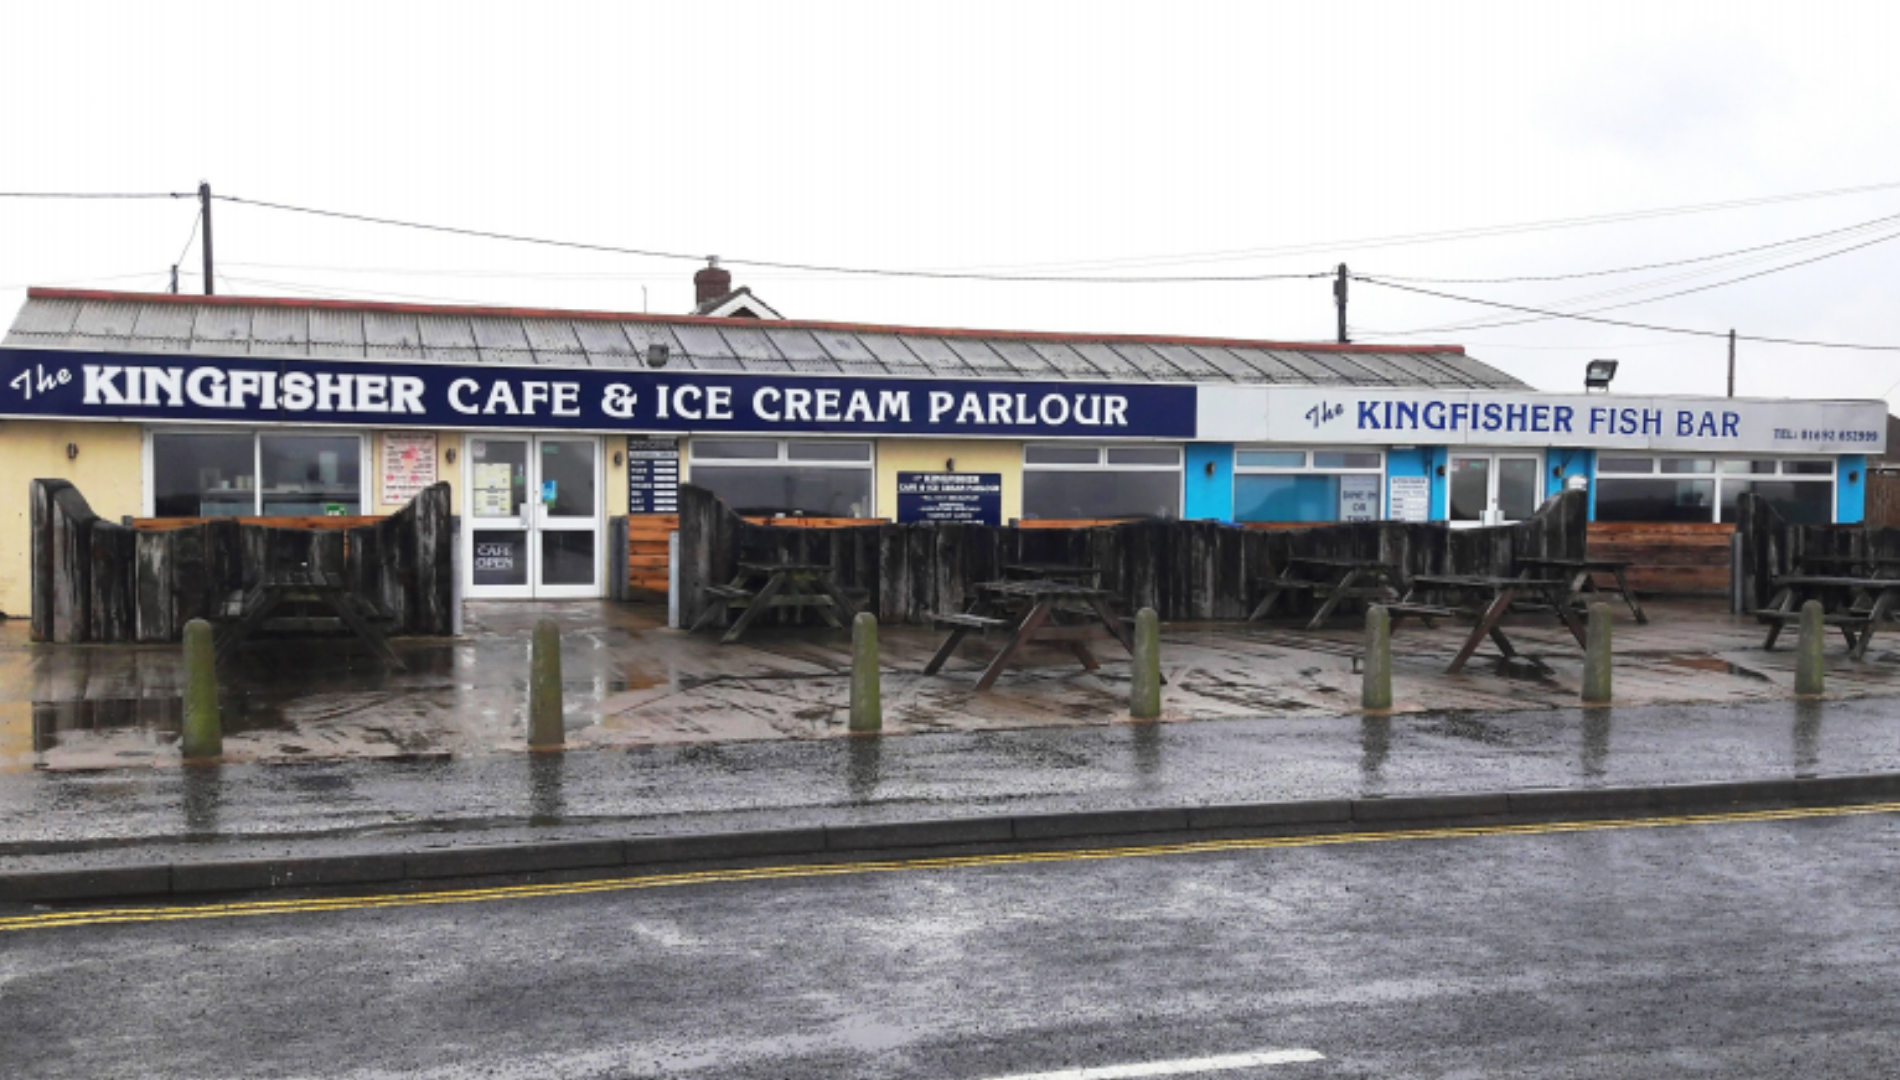 The Kingfisher Cafe's story: building our business' resilience against extreme weather conditions